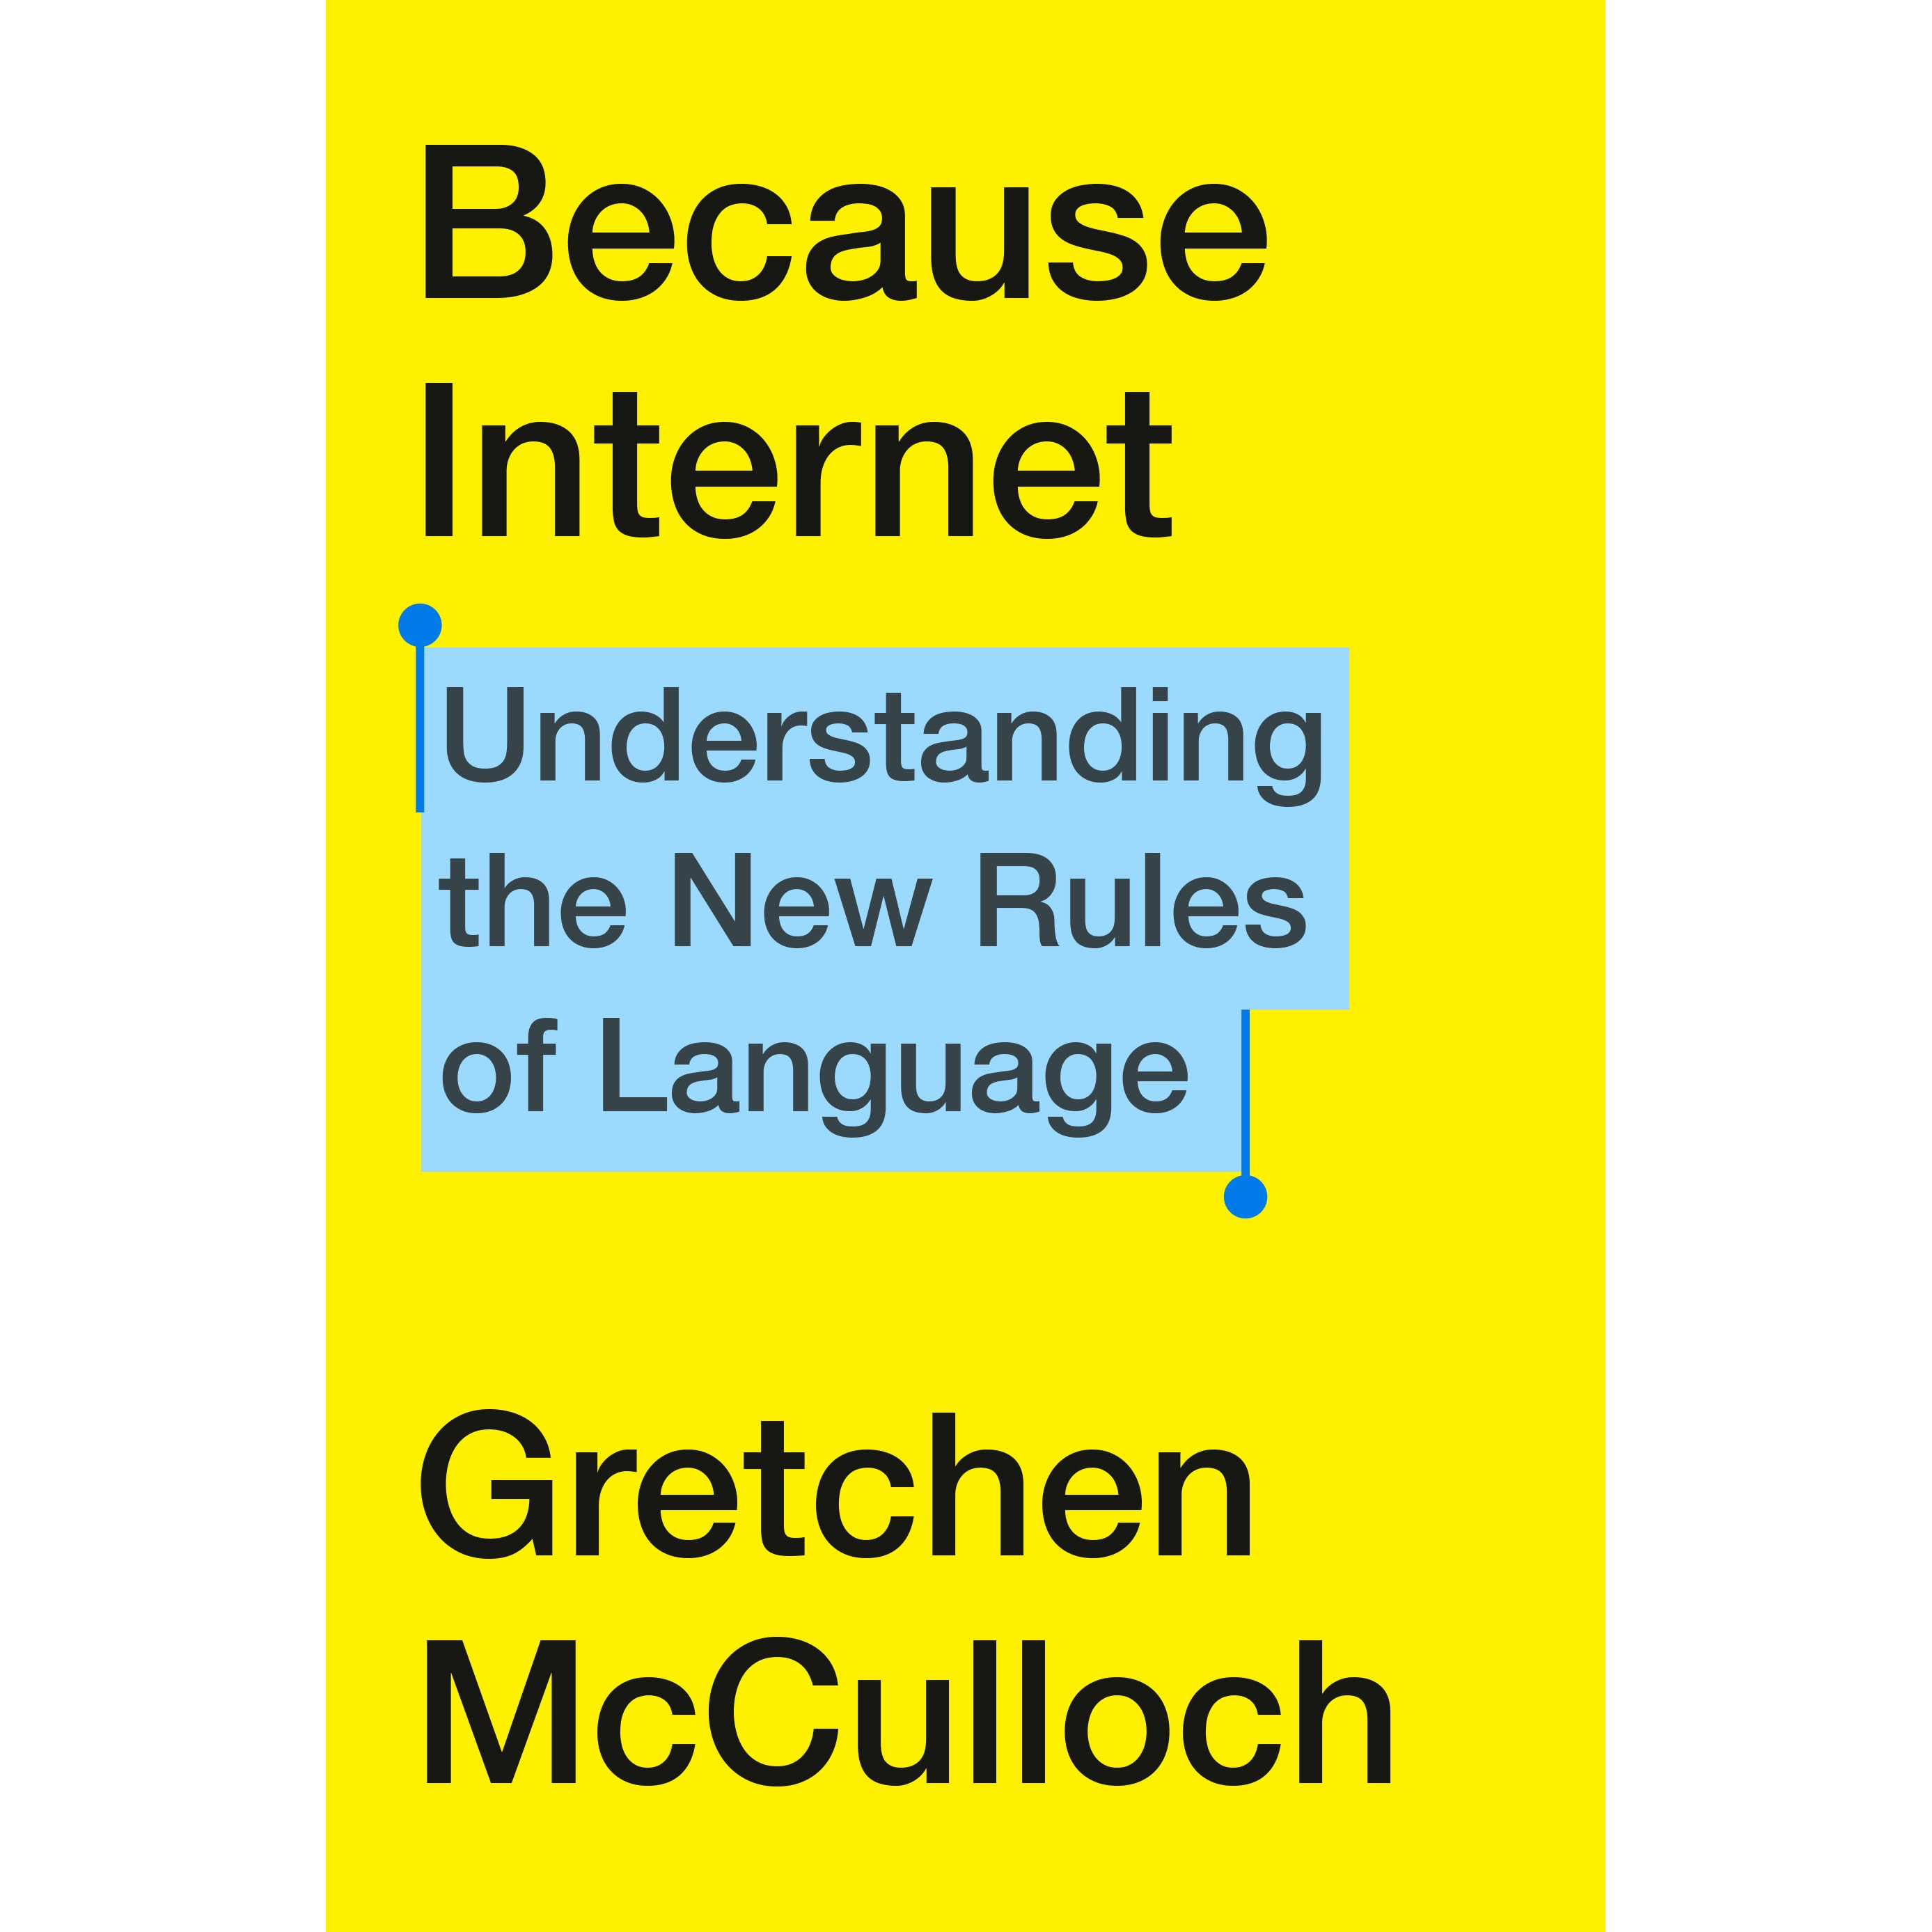 Image result for  2. Because Internet: Understanding the New Rules of Language by Gretchen McCulloch